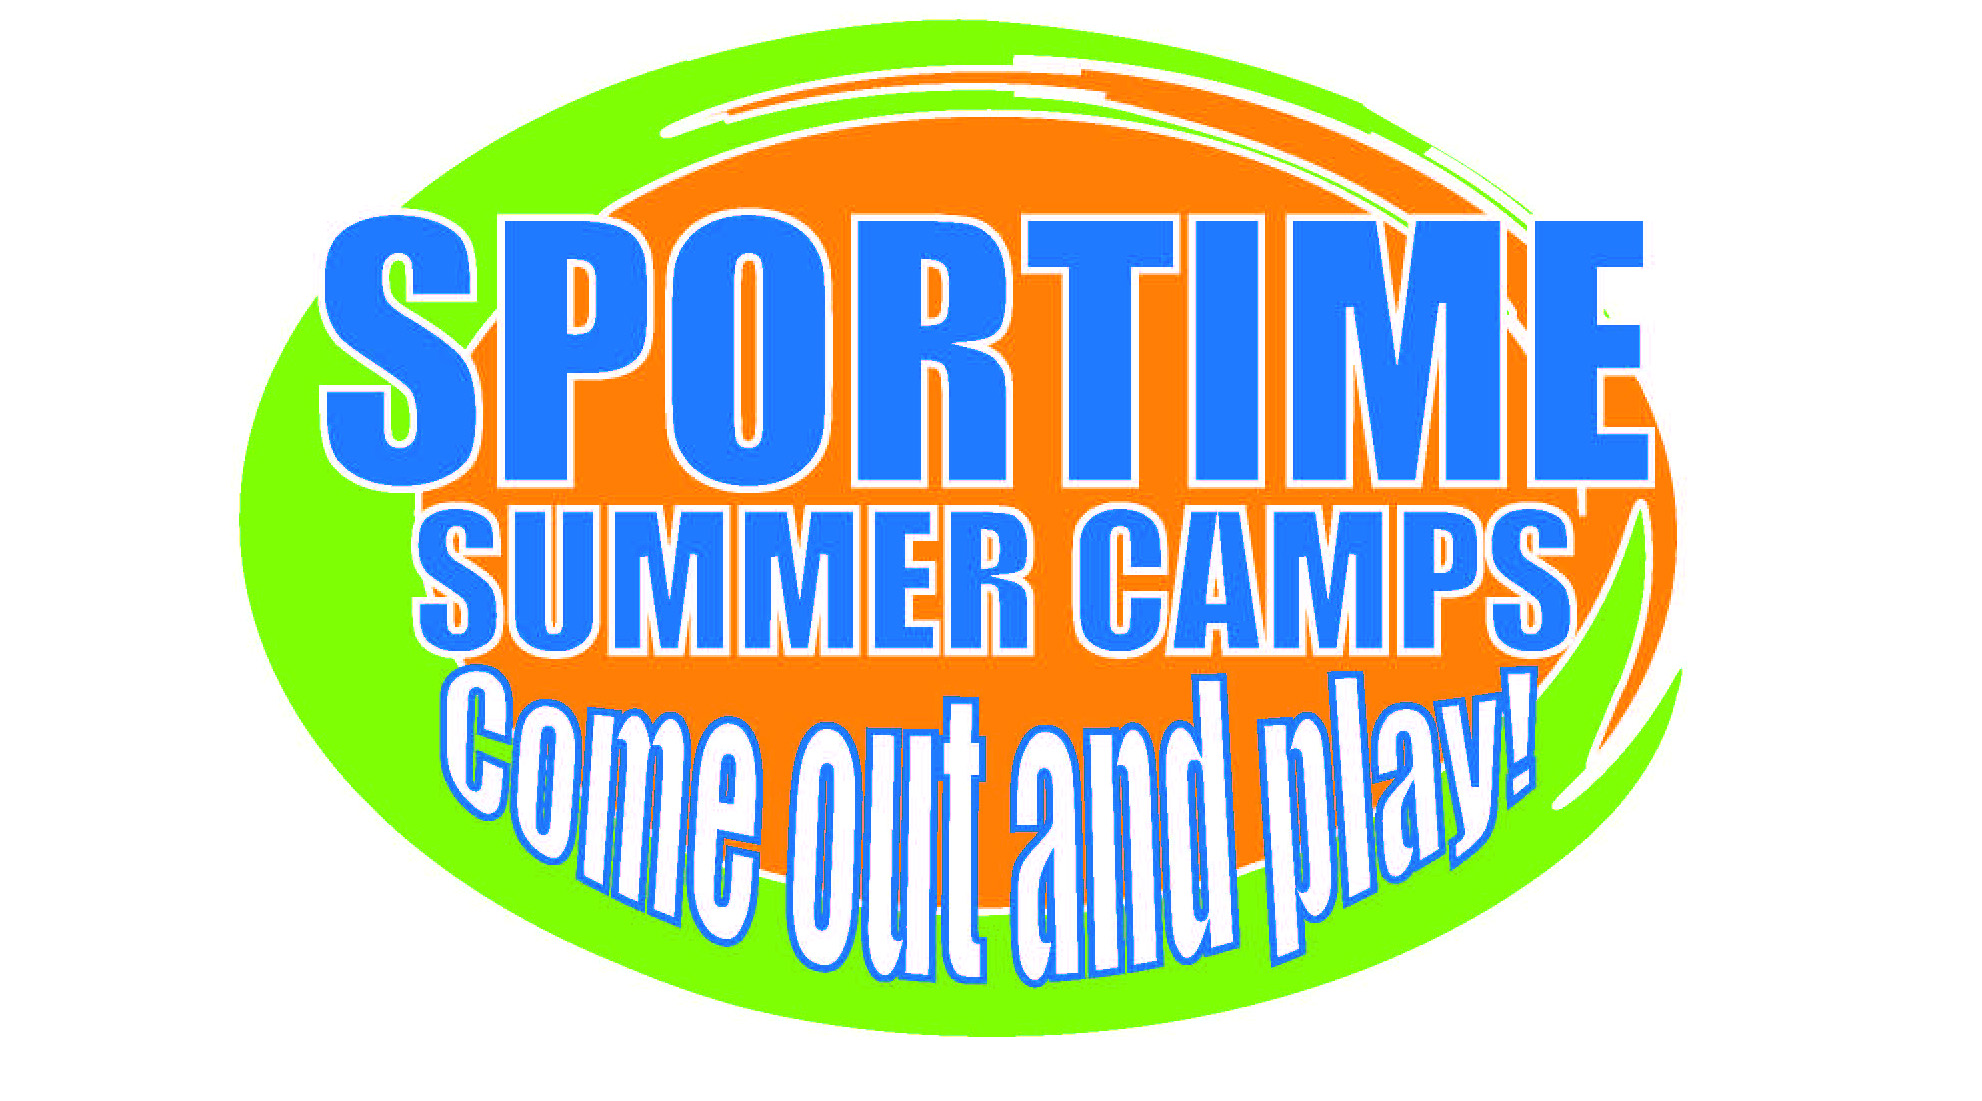 SPORTIME Summer Camps